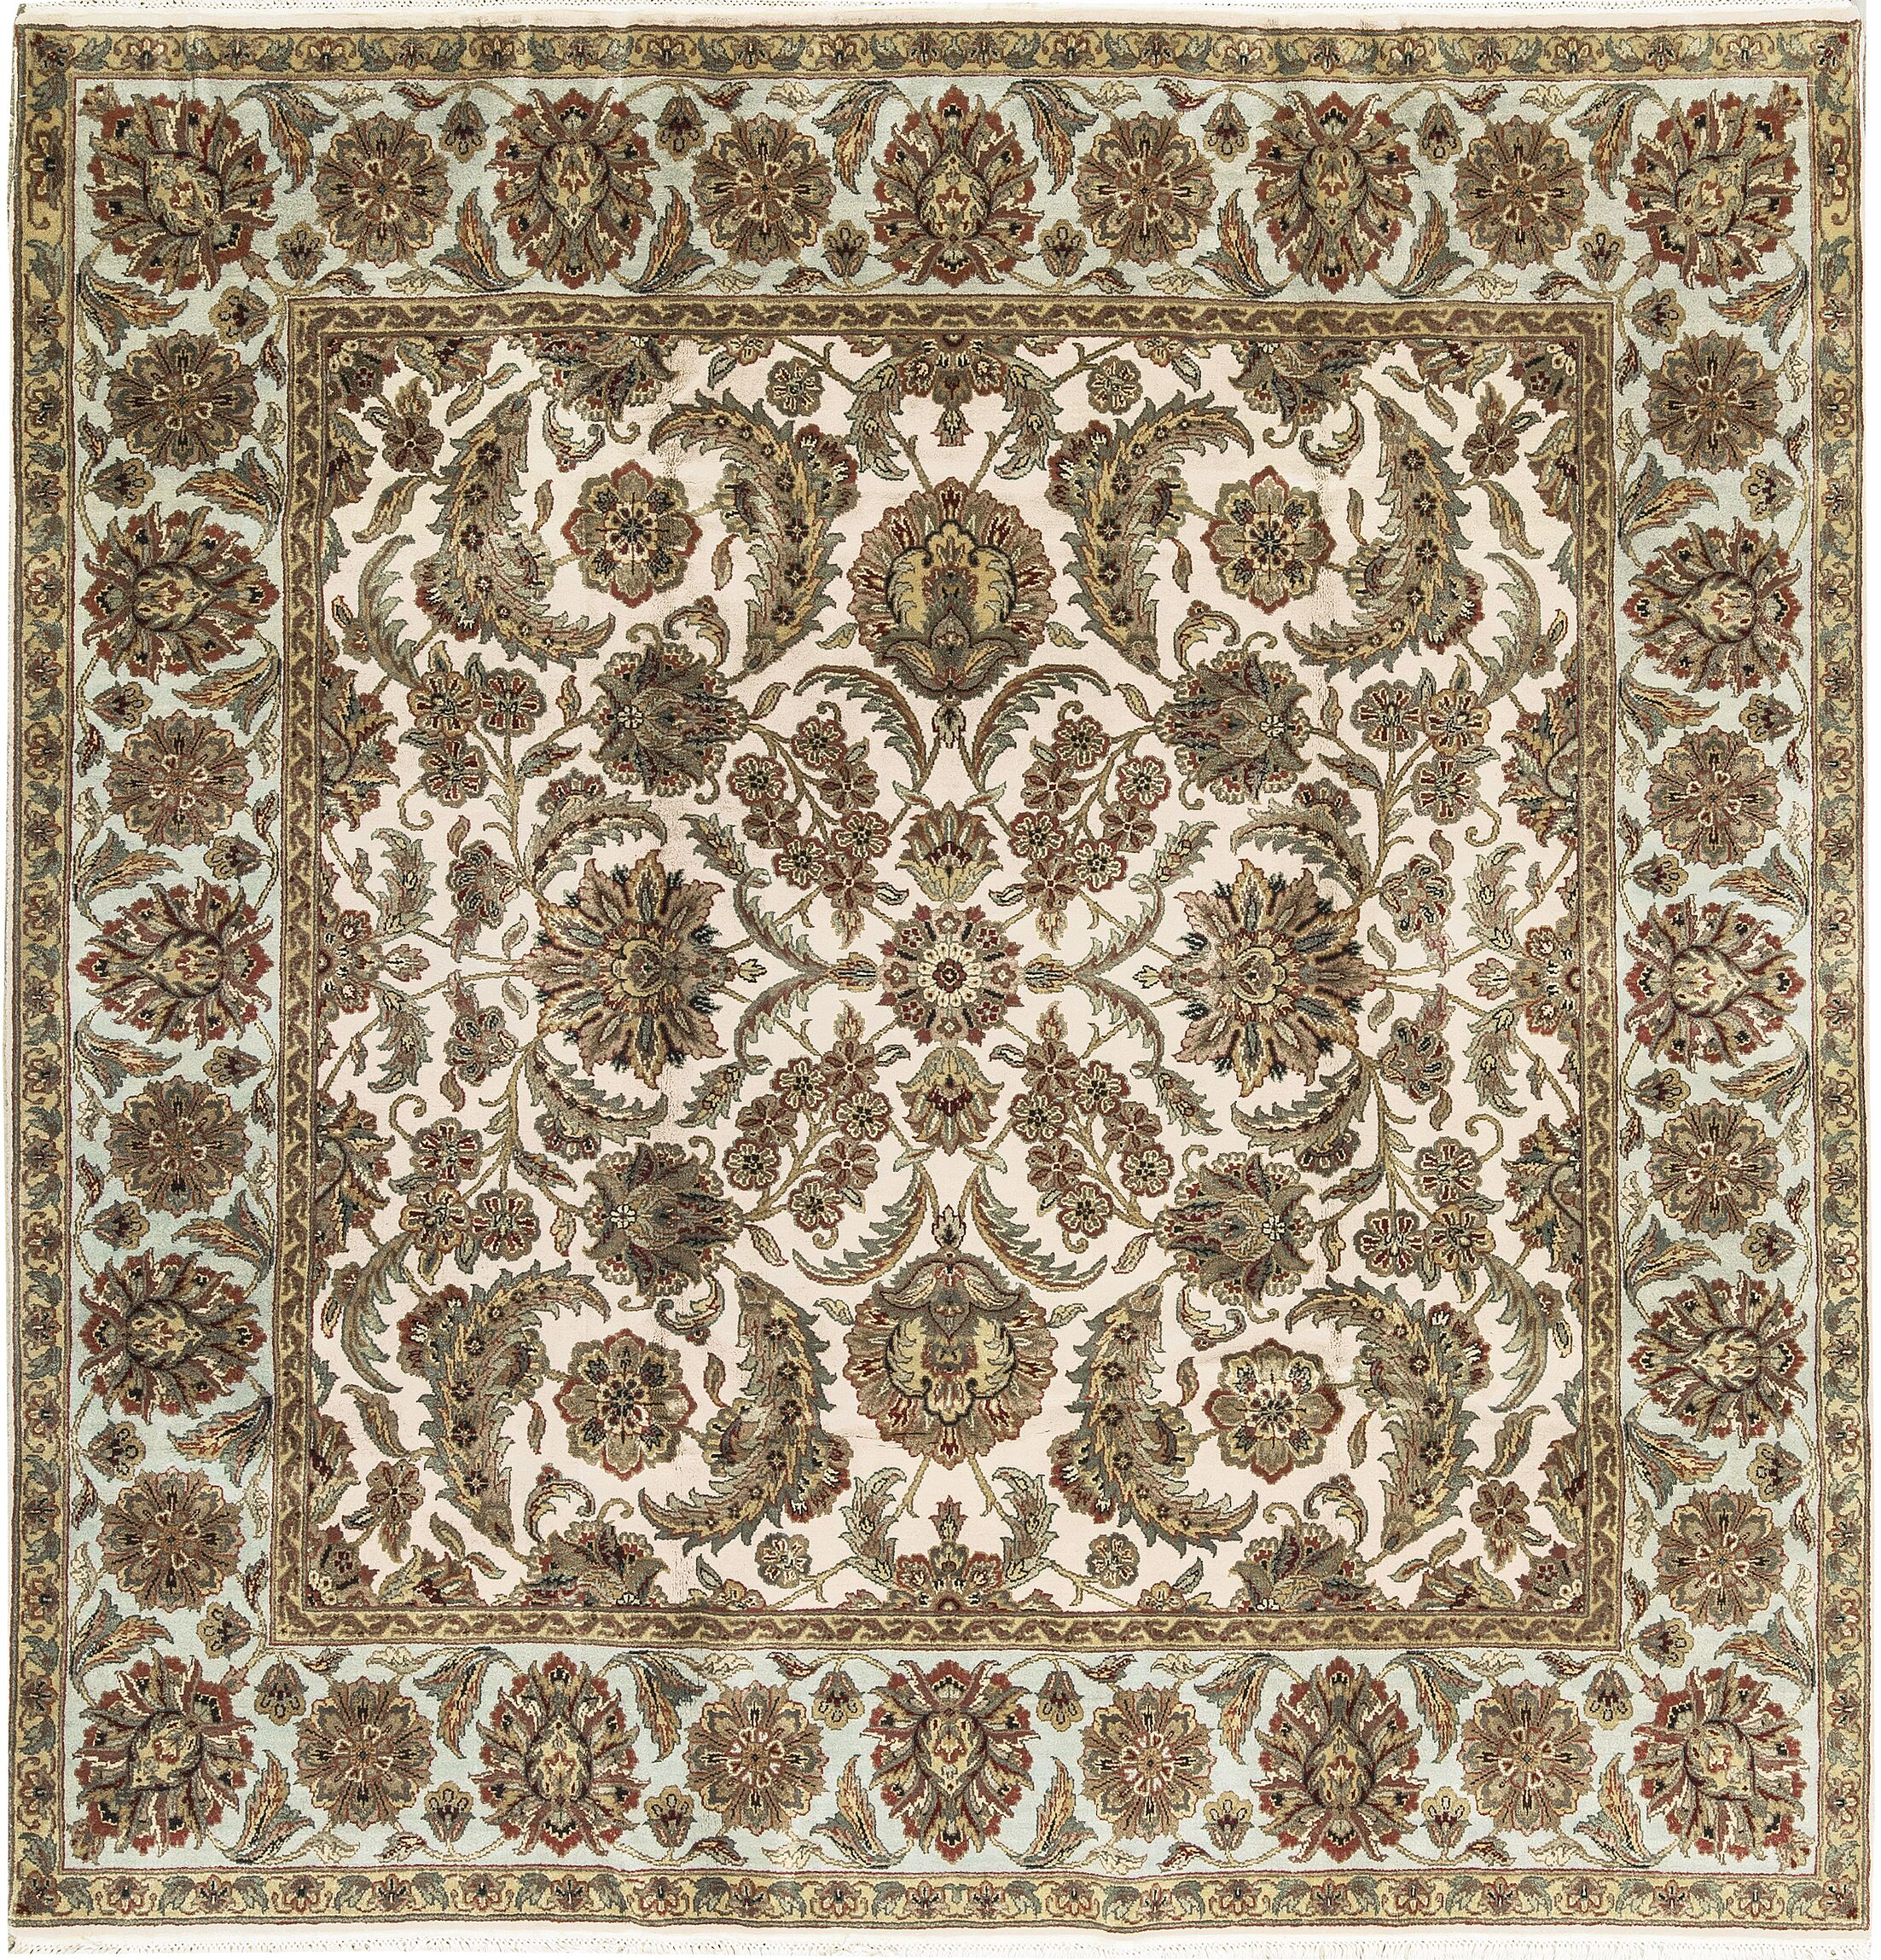 One-of-a-Kind Hand-Knotted Wool Beige/Olive Indoor Area Rug